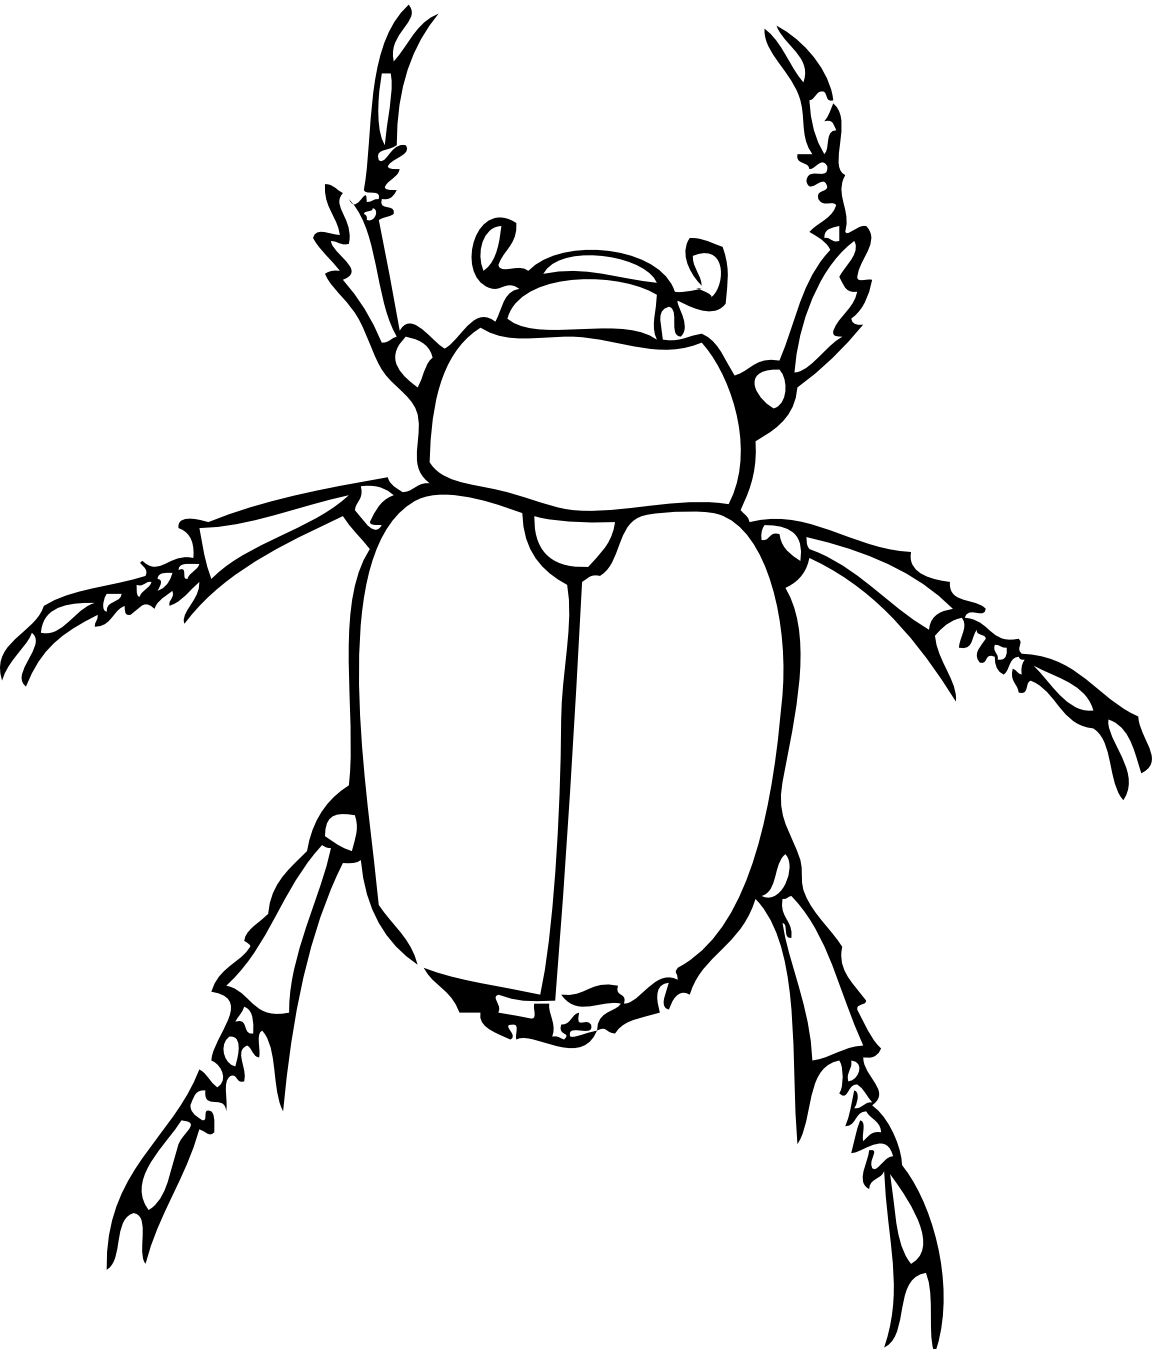 drawing insect